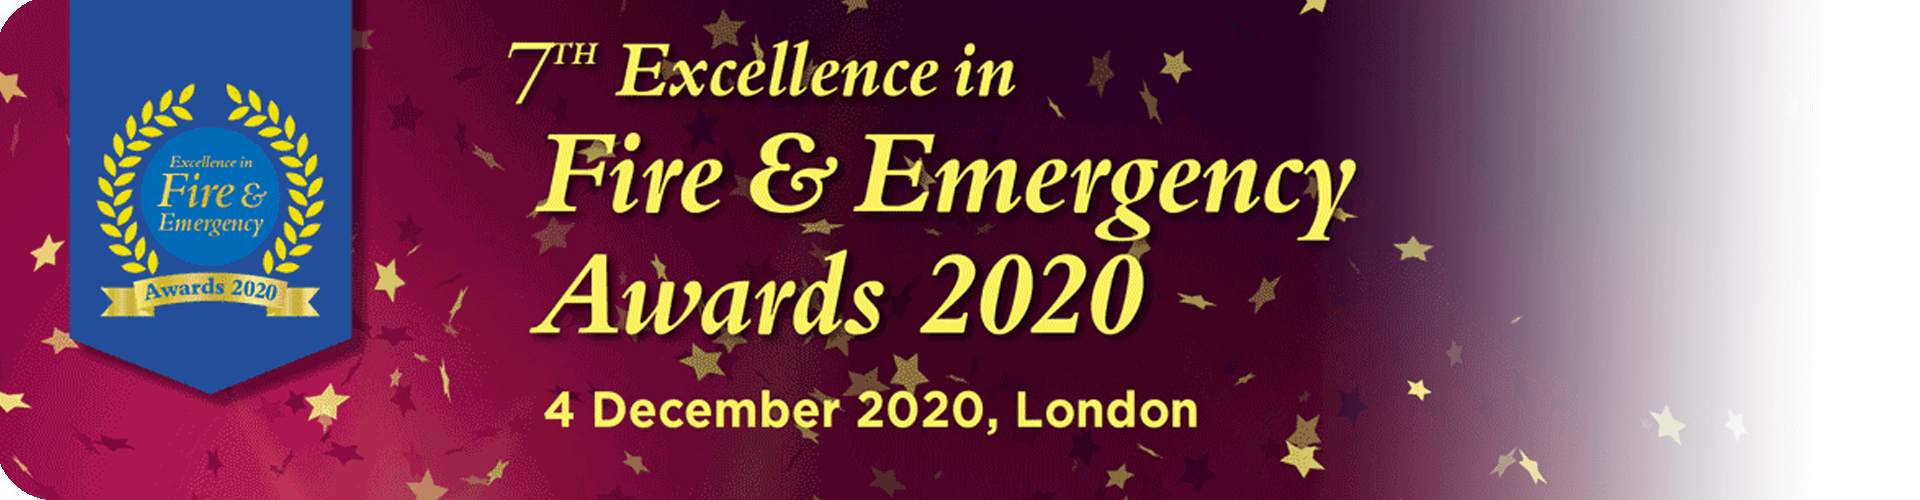 fire and emergency awards 2020 branding